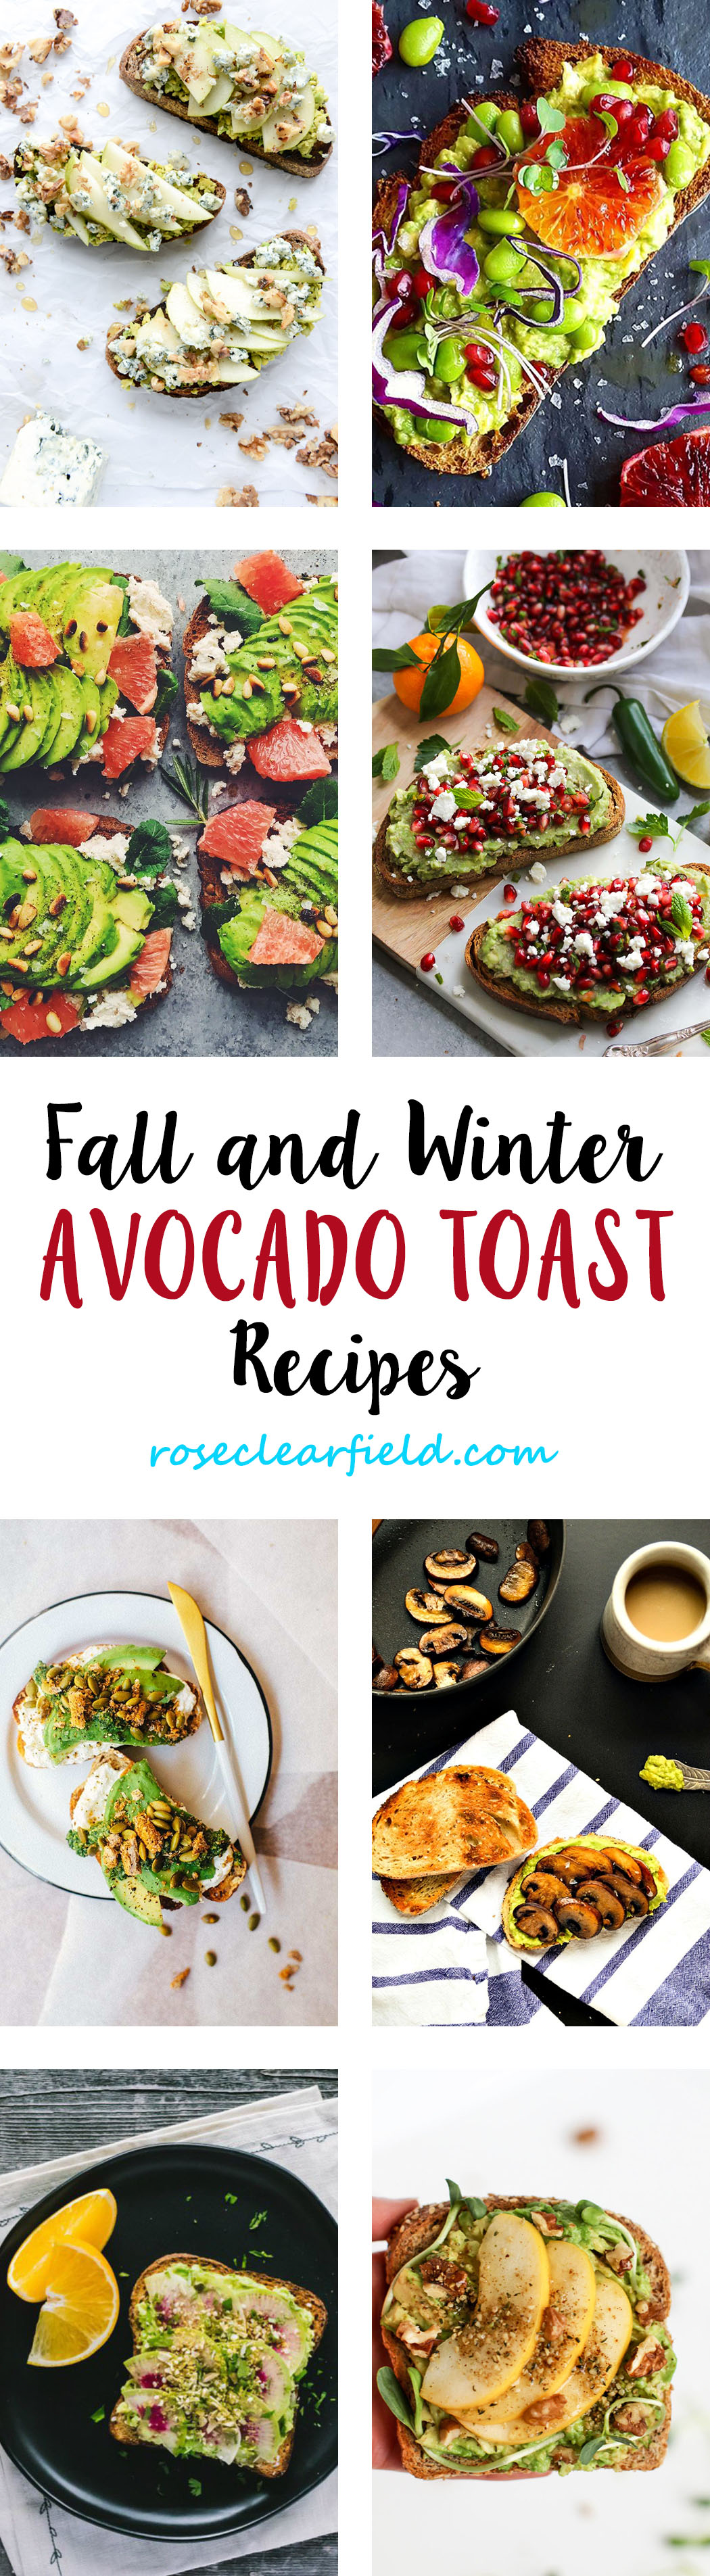 Fall and Winter Avocado Toast Recipes | http://www.roseclearfield.com